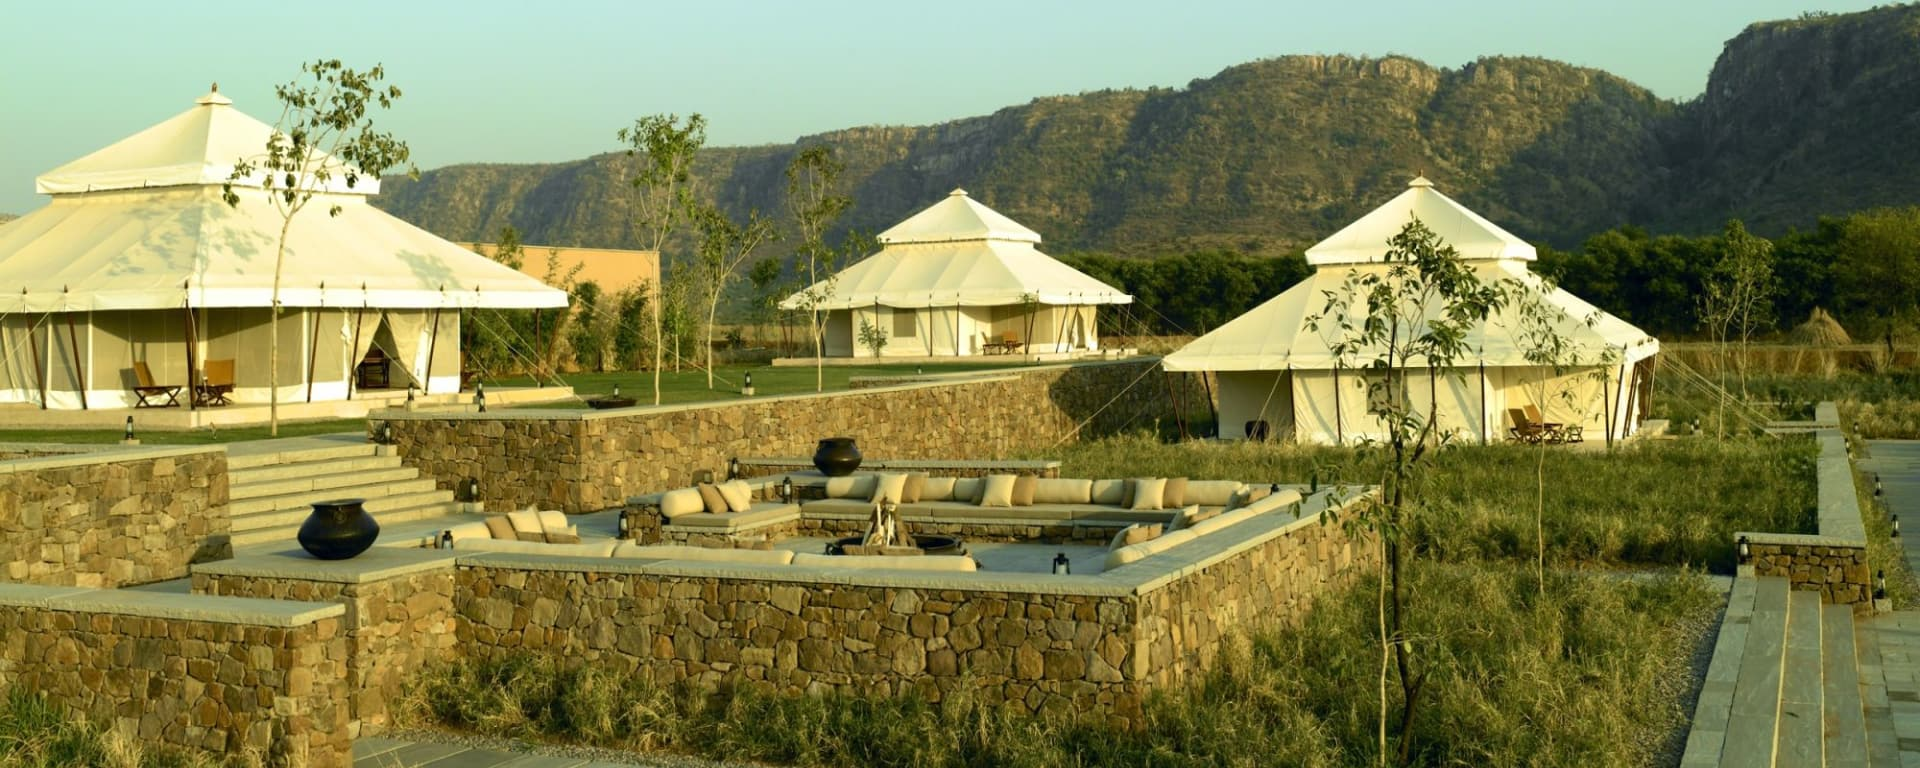 Aman-i-Khas in Ranthambore: tents and aravalli hills